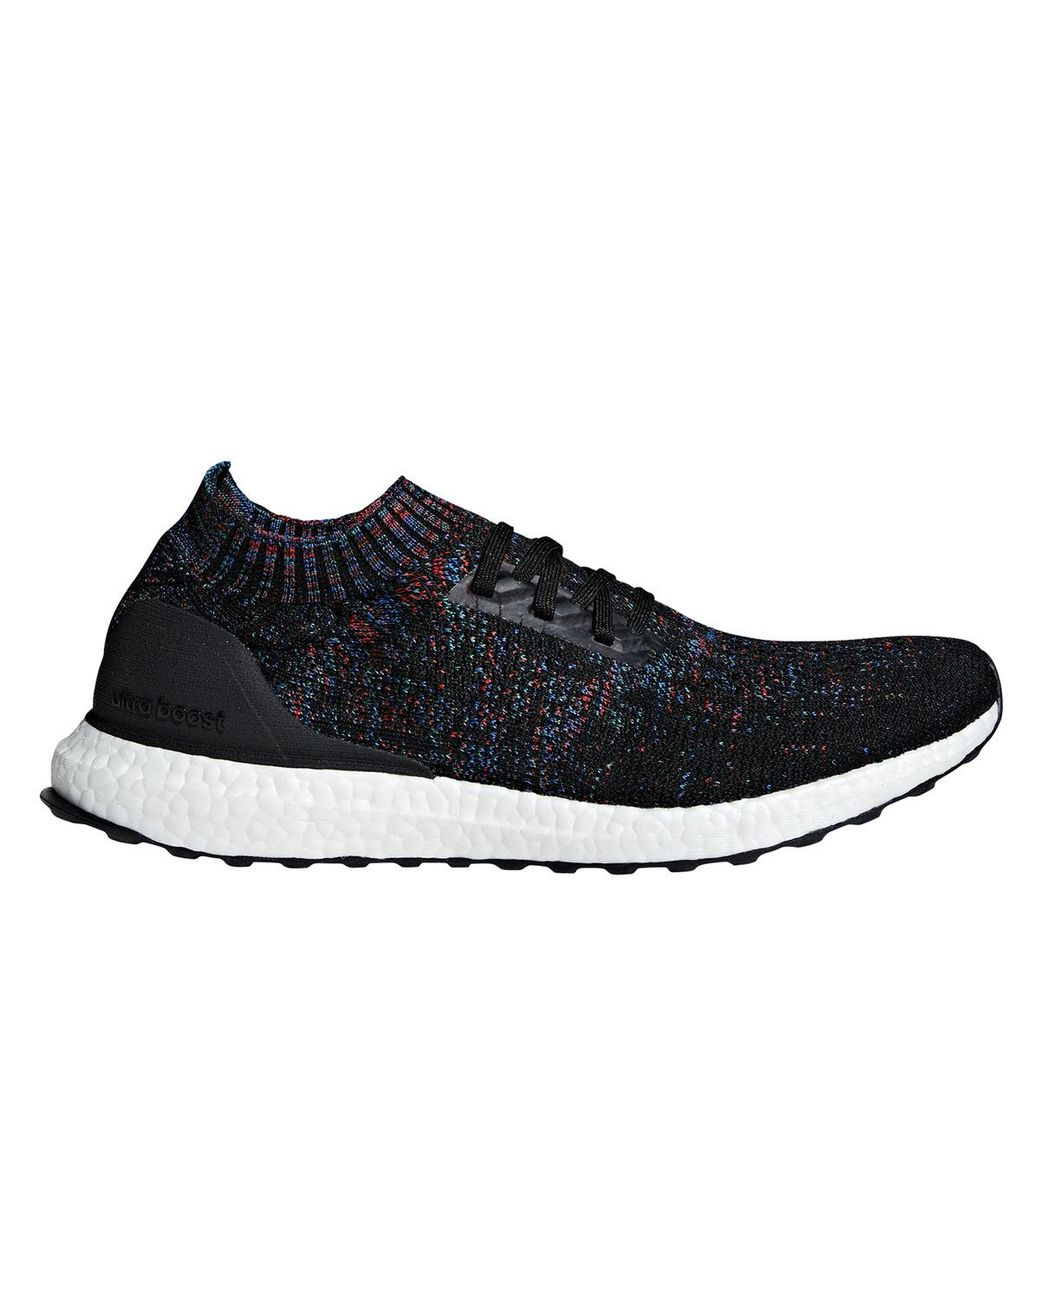 34550e95b1270 adidas Ultraboost Uncaged Casual Trainers in Black for Men - Lyst